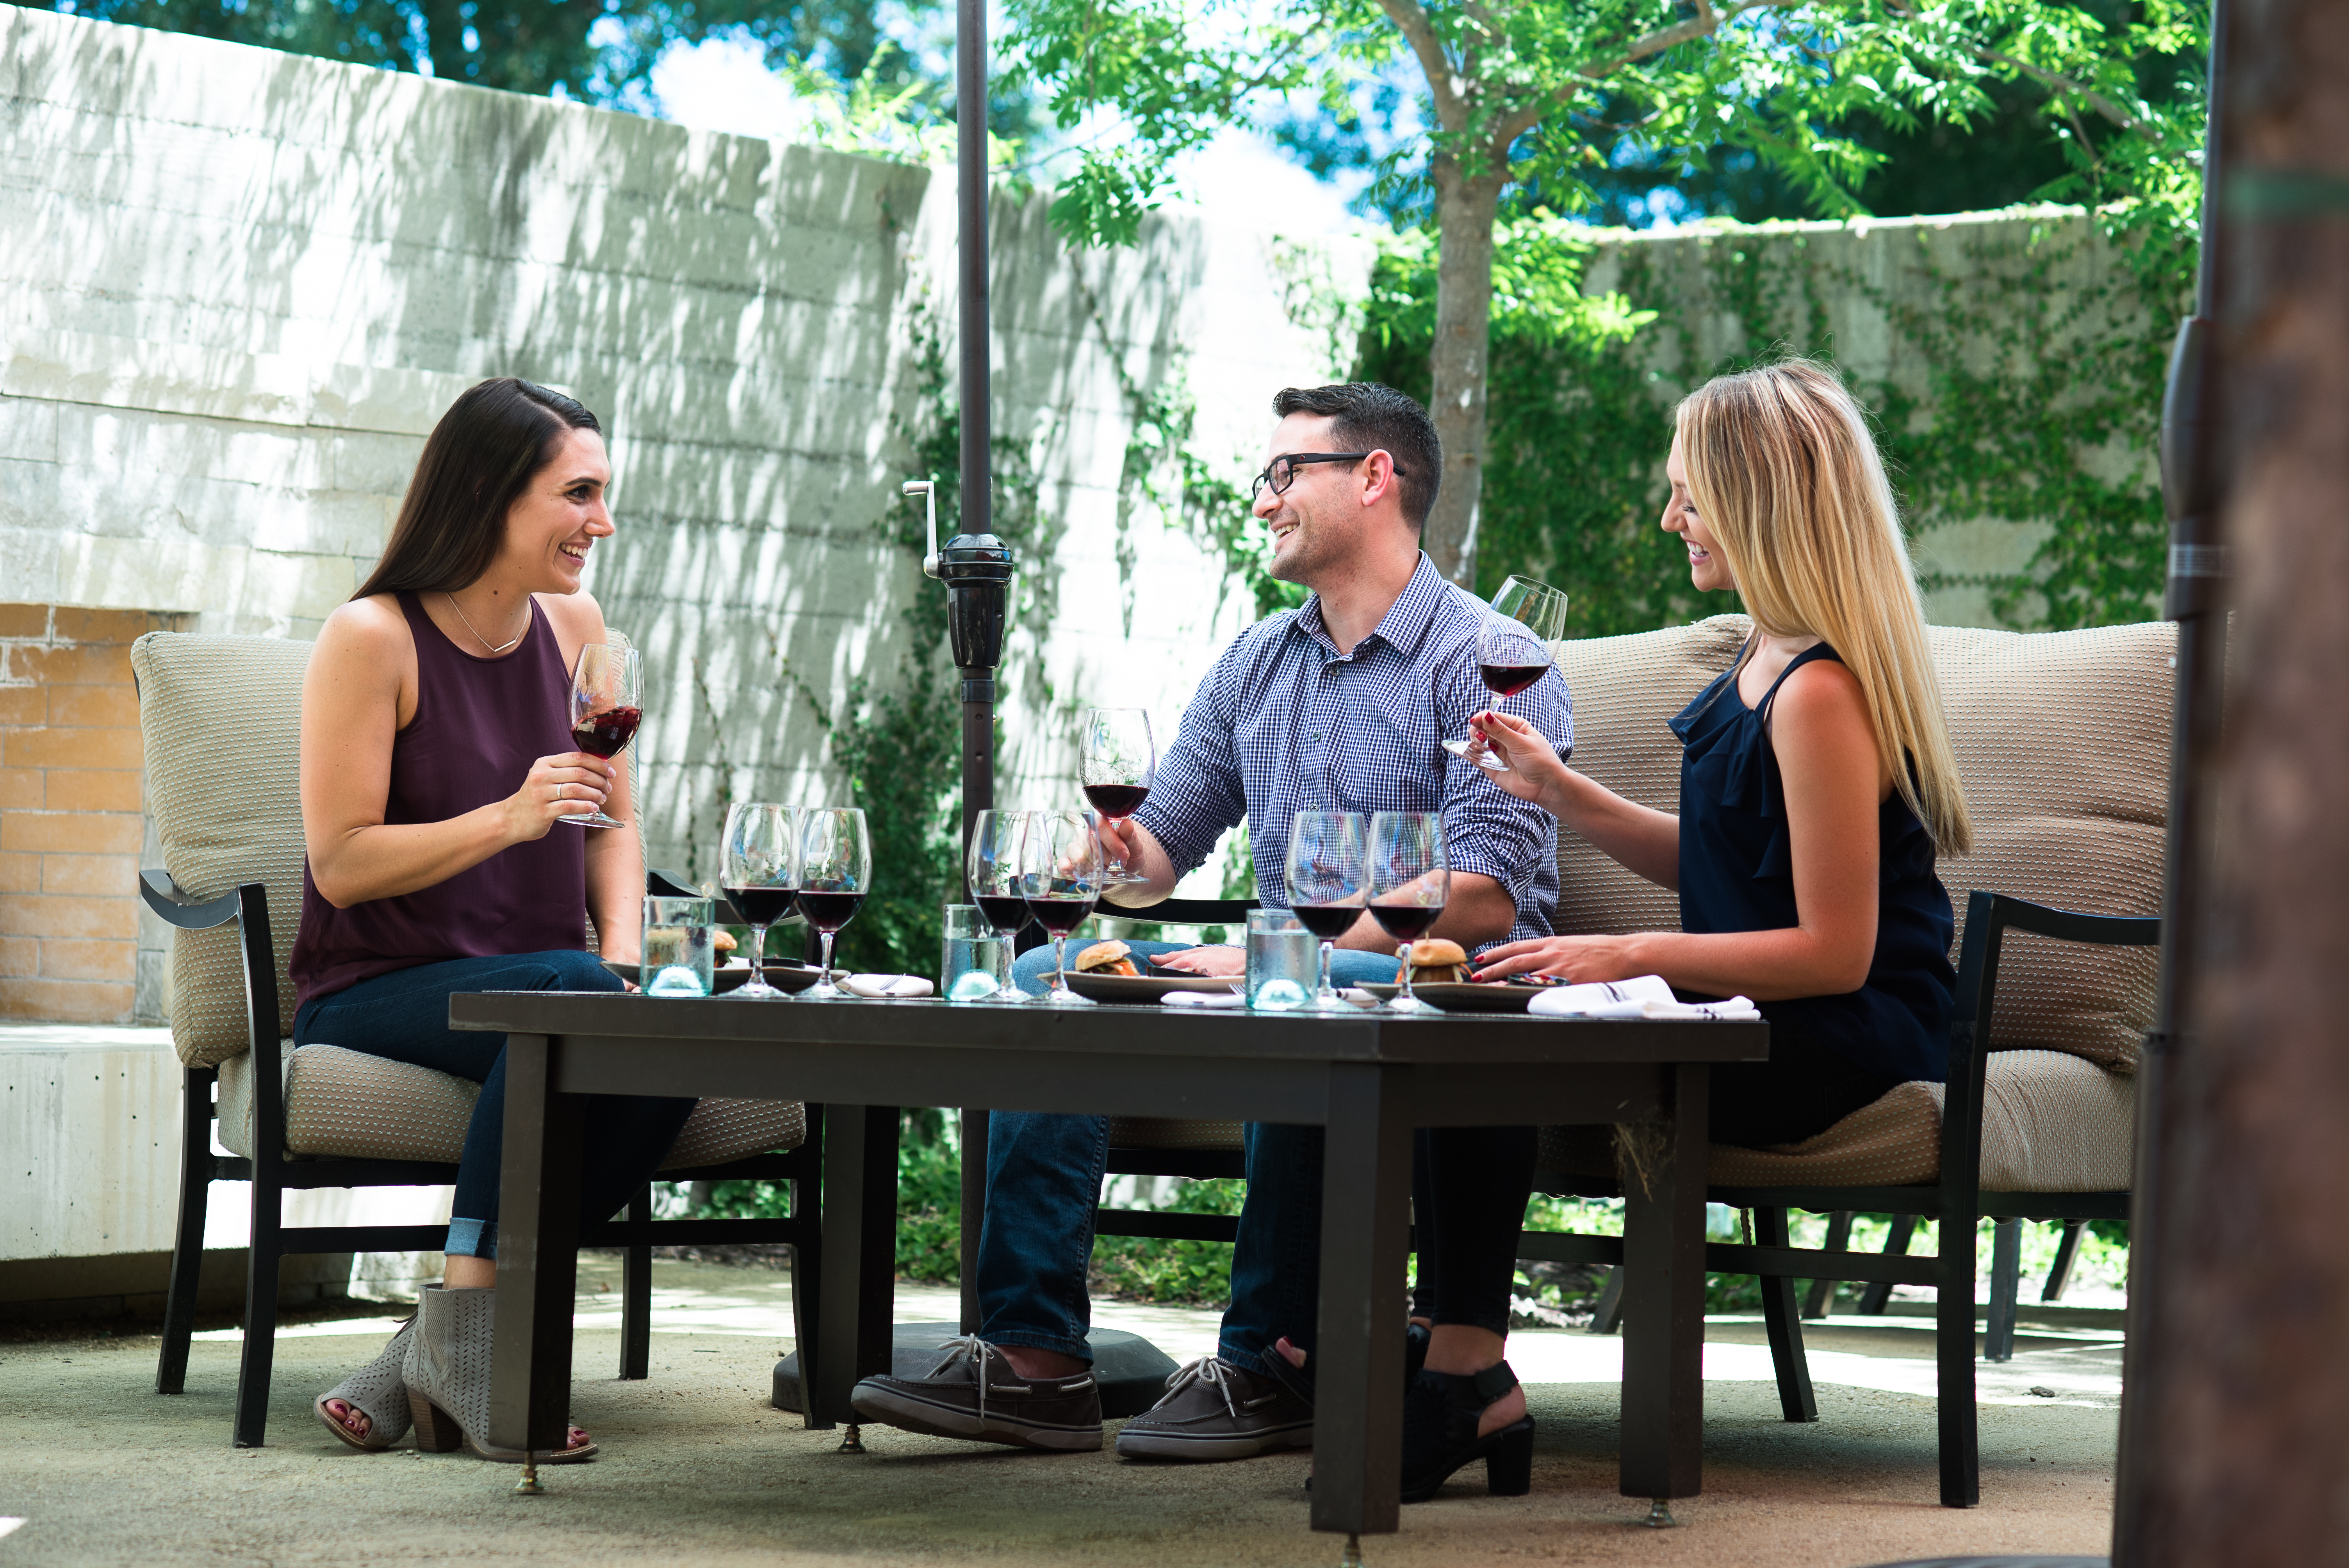 Two woman and a man enjoy a food and wine pairing in a courtyard area.